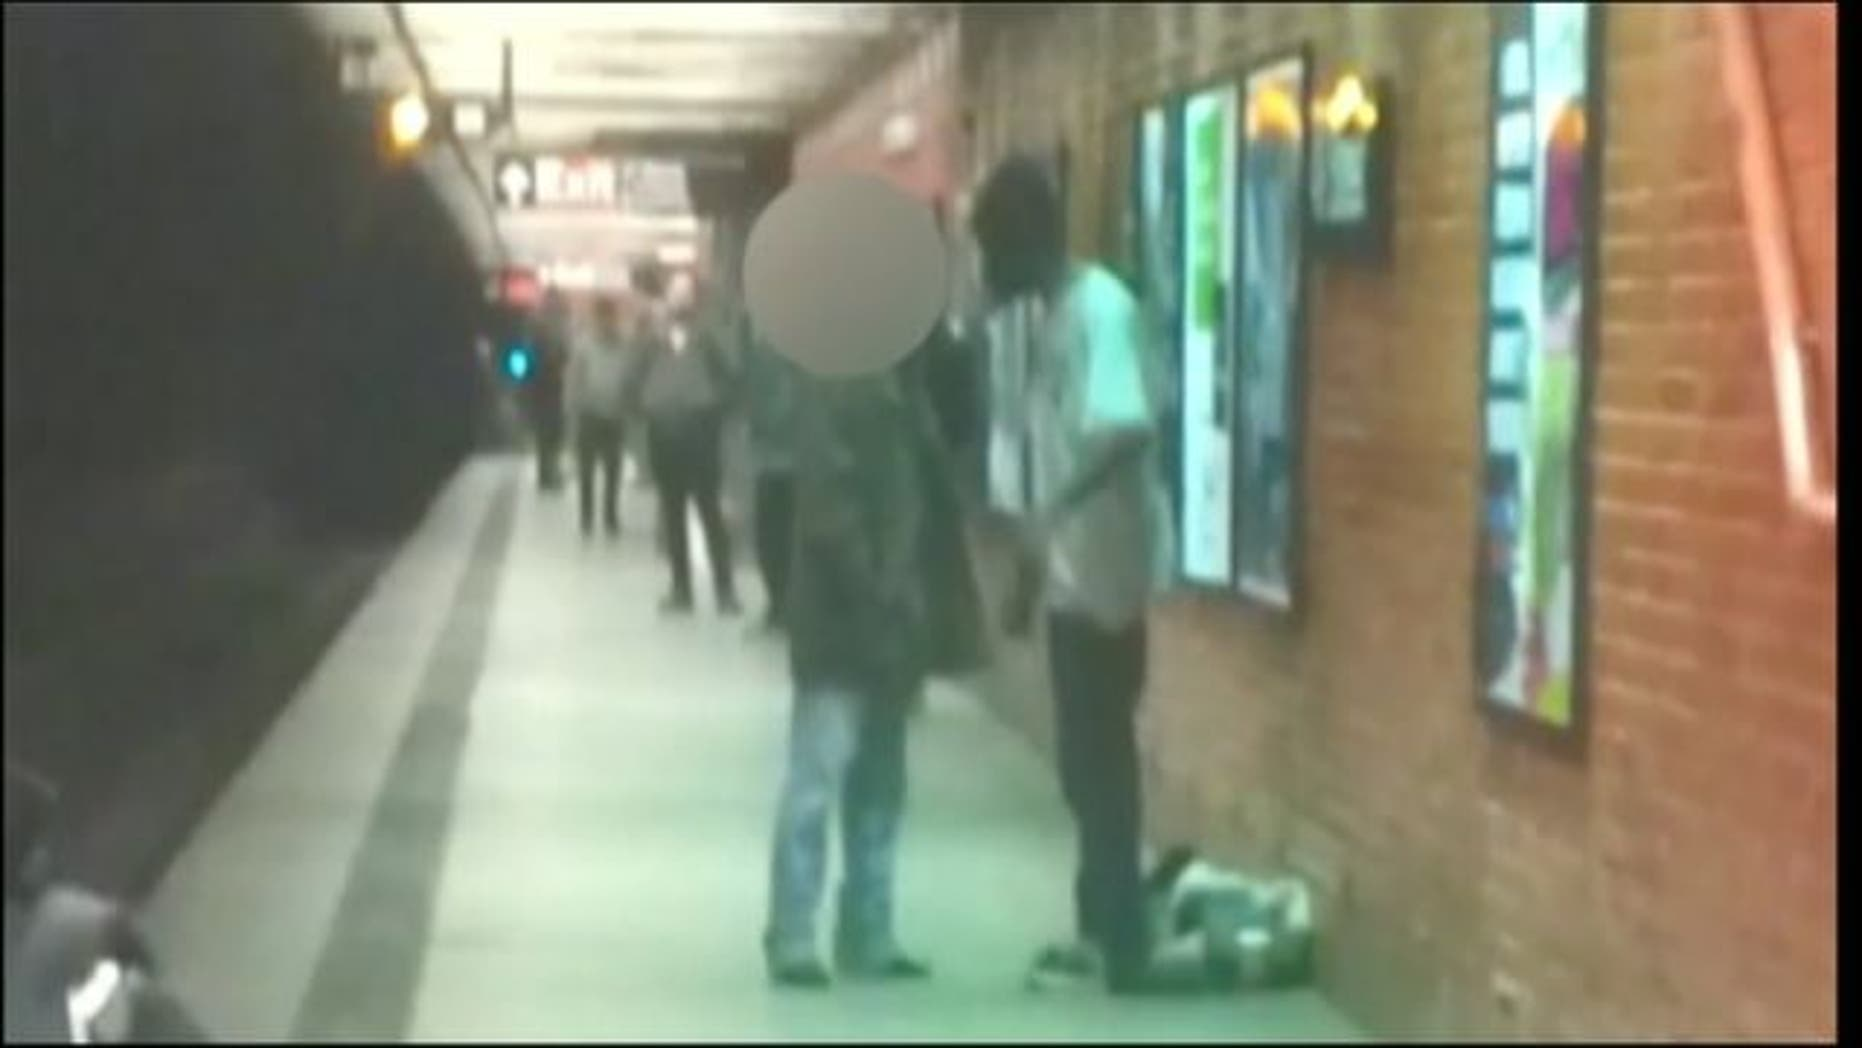 Dec. 3, 2012: An alleged suspect in subway train pushing and another man talk on platform.